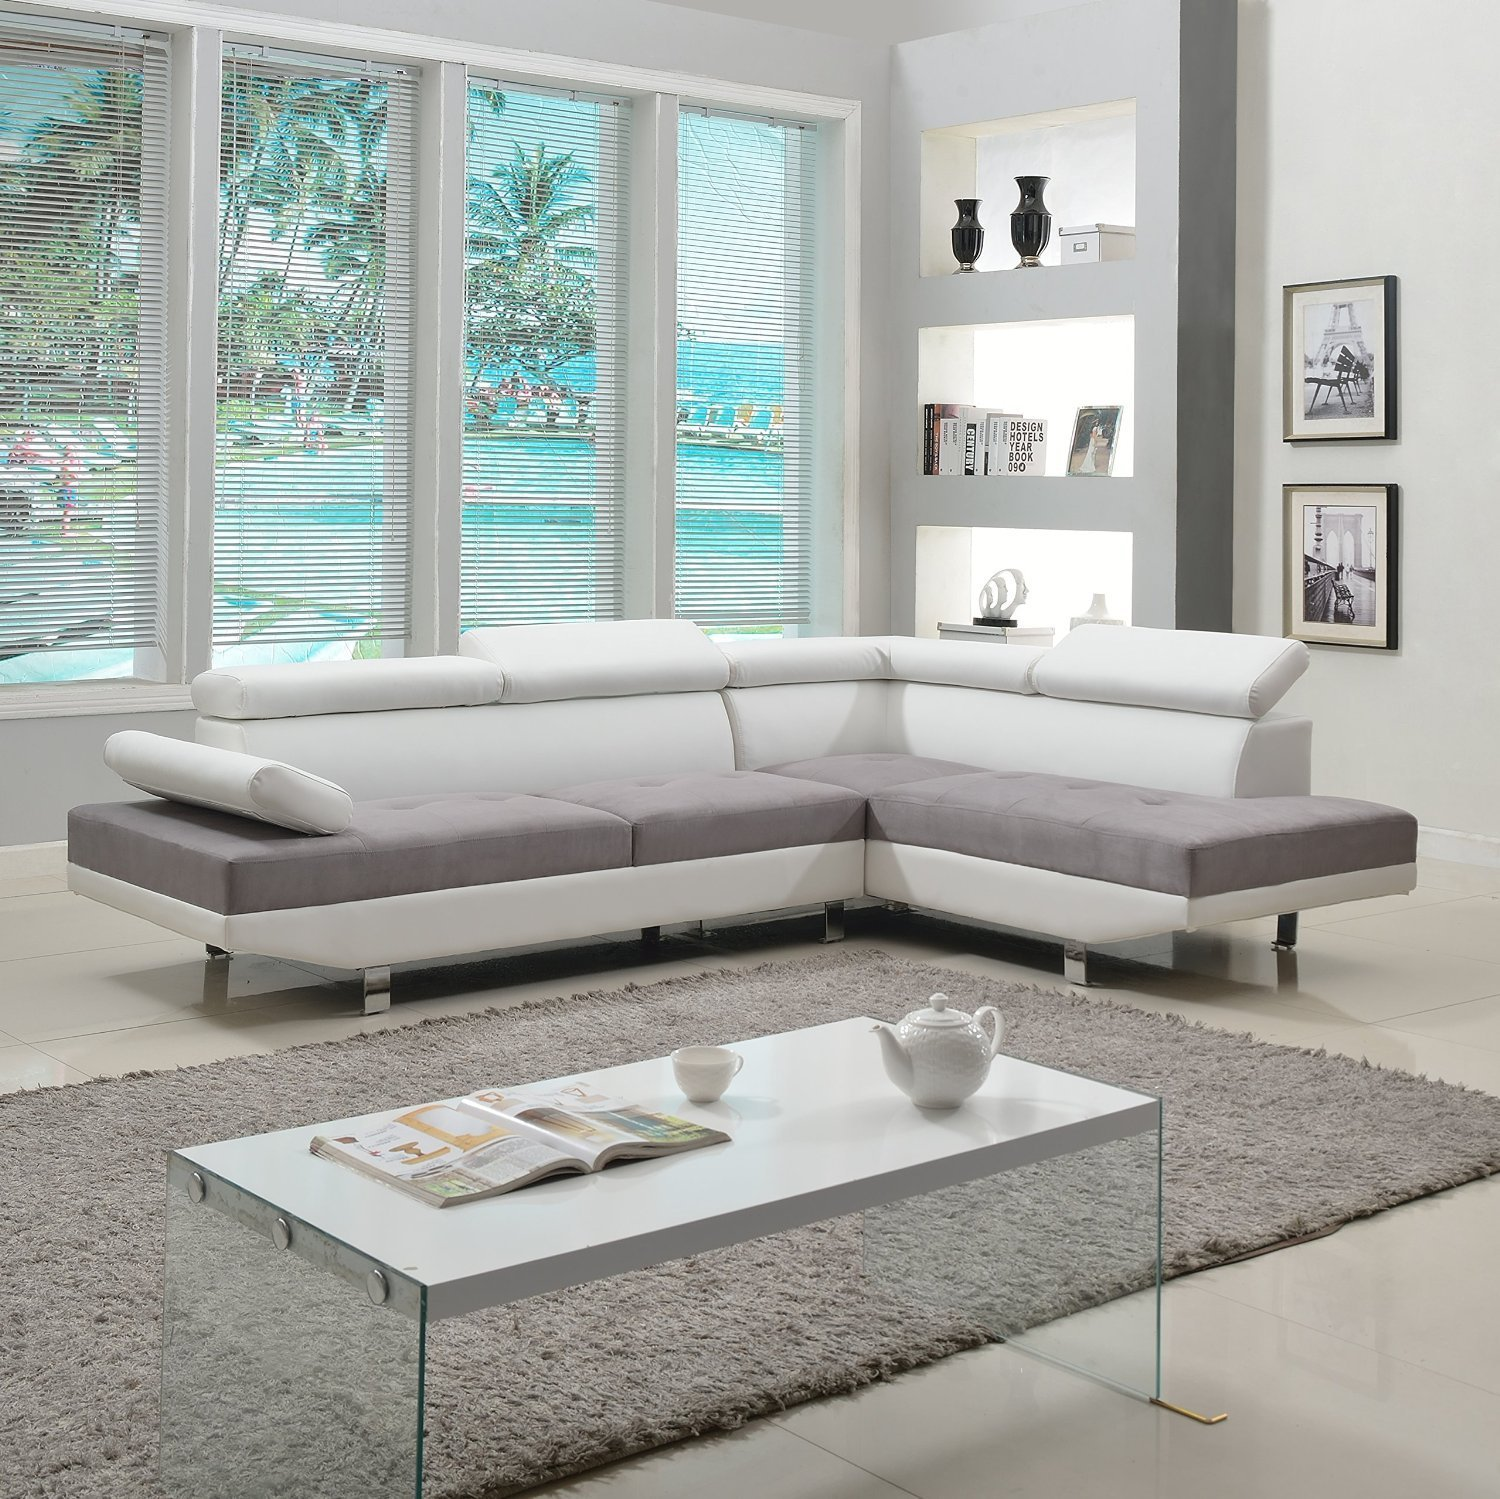 Modern living room furniture review find the best one Modern white furniture for living room